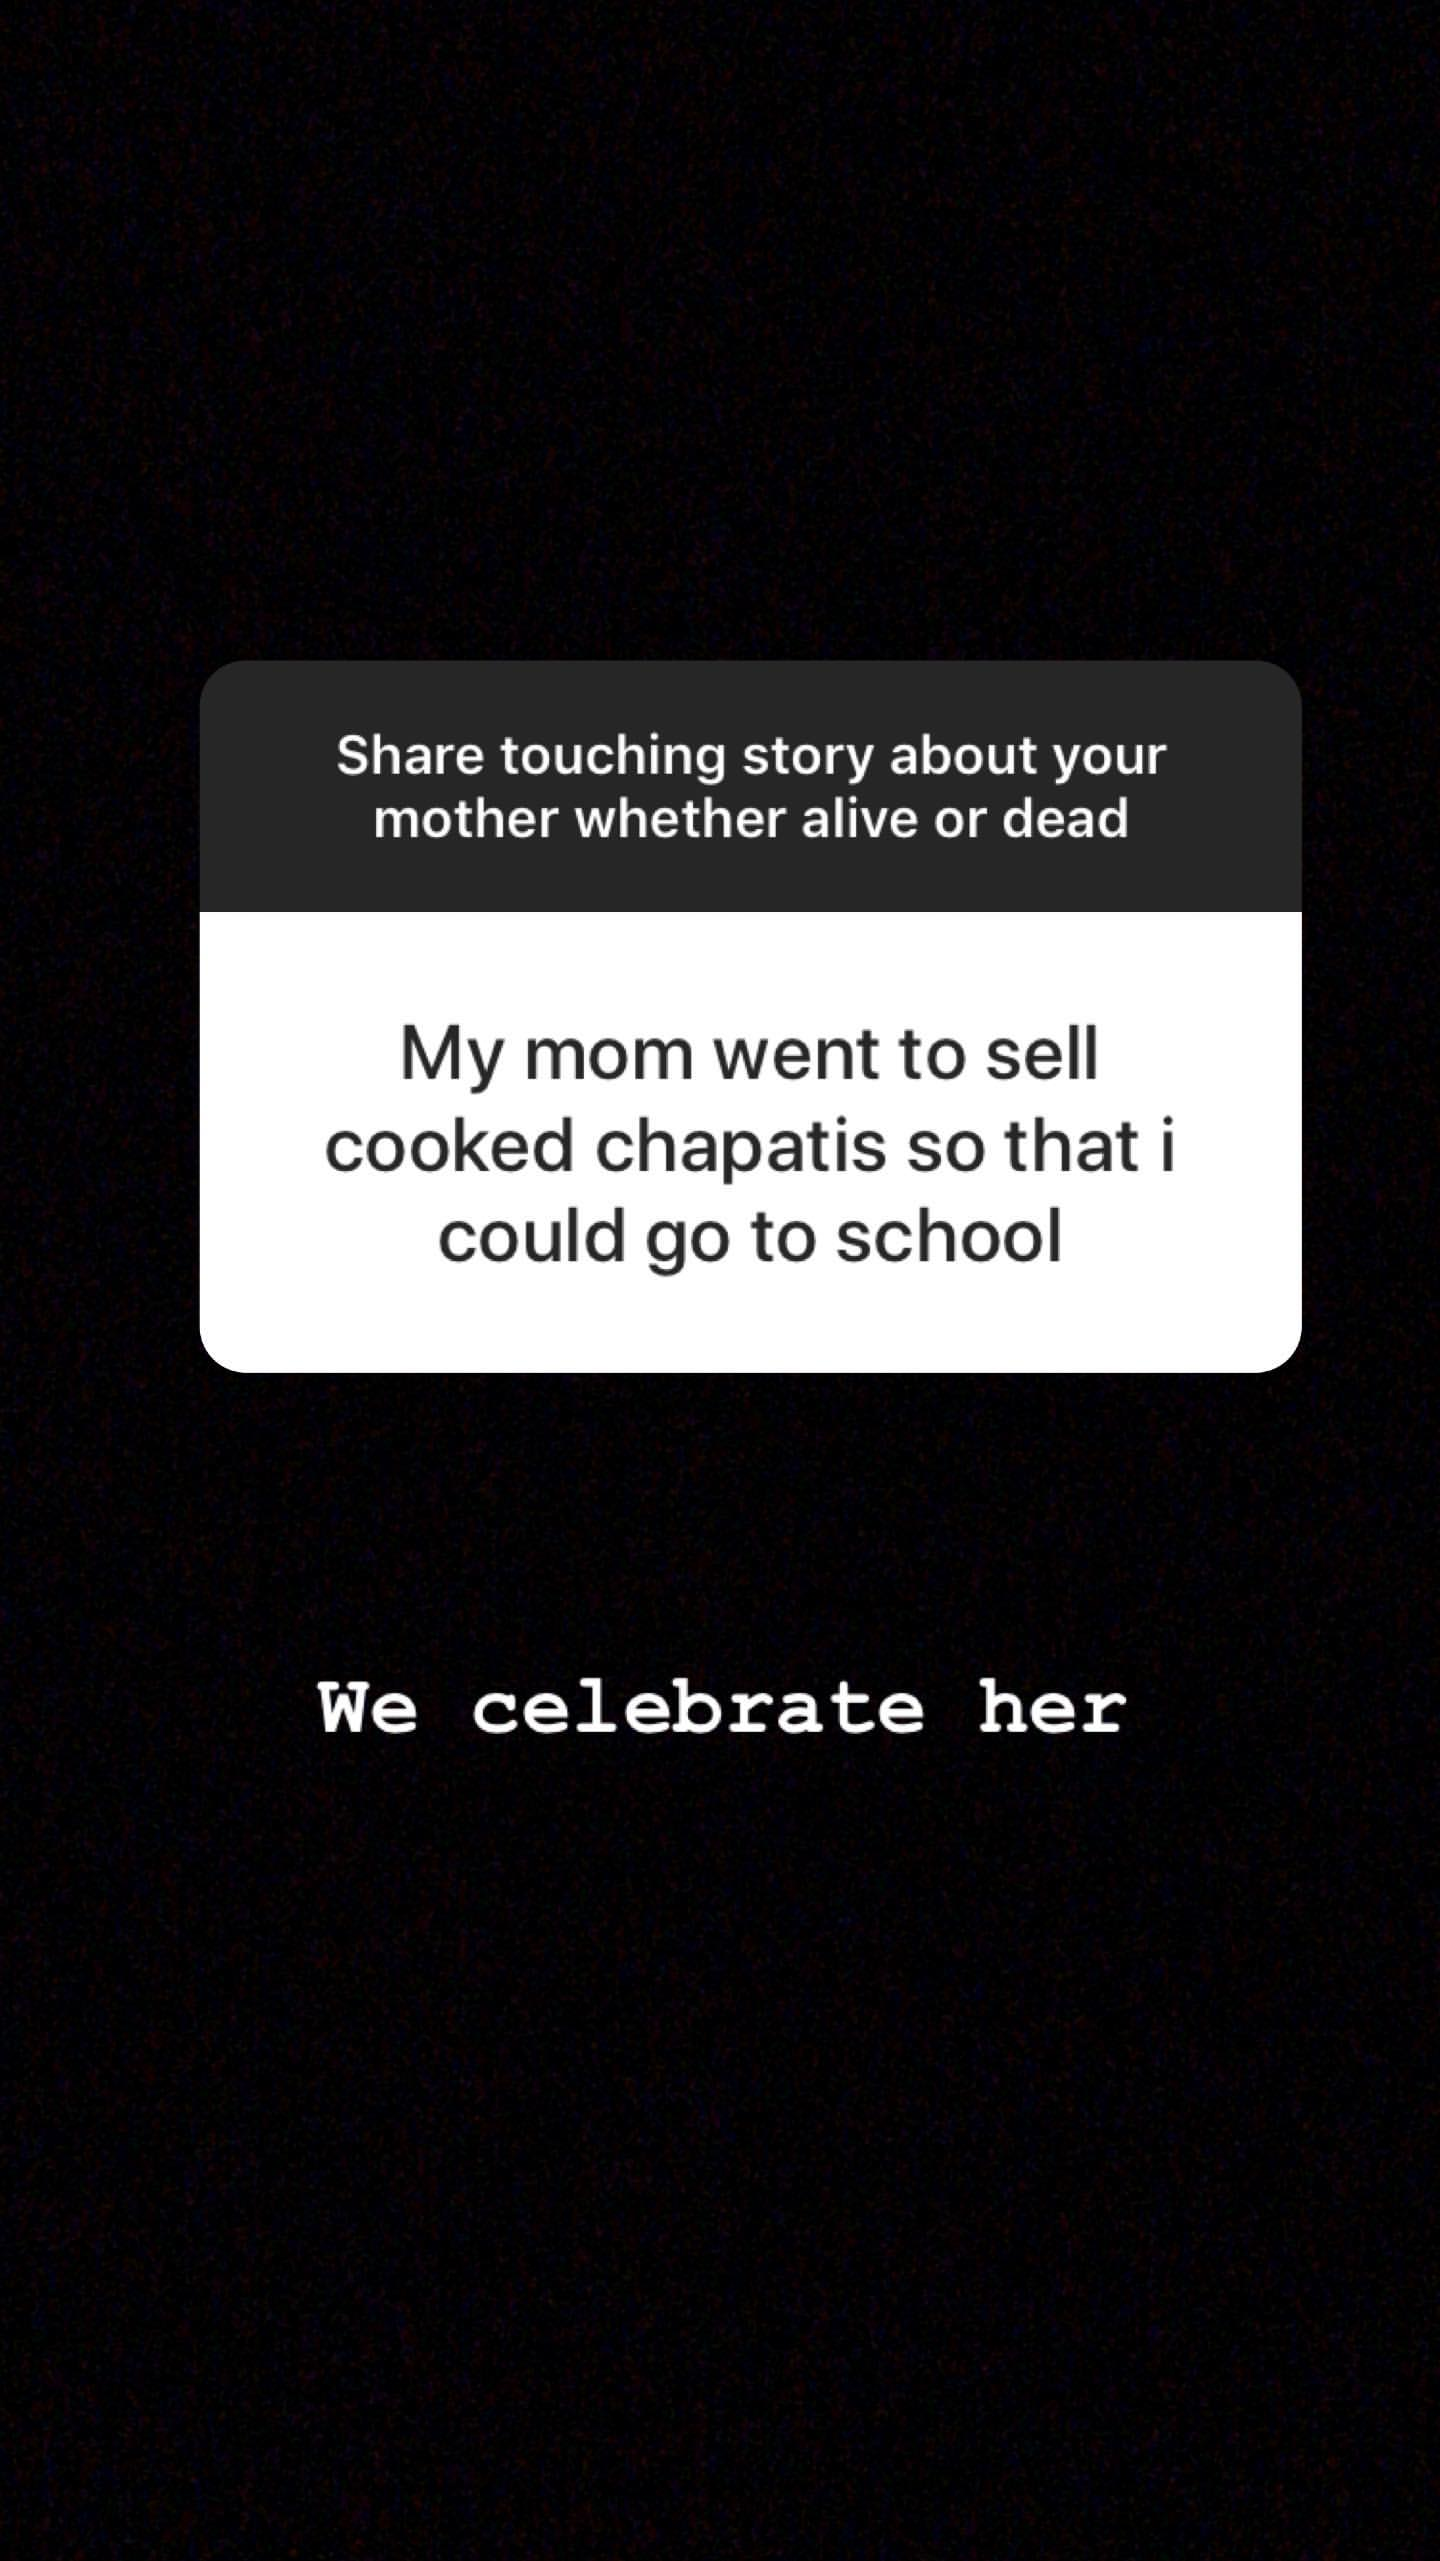 58779197 799980020363987 1896934297744030384 n - Tear-jerking! Mpasho fans break down sharing touching stories about their mothers